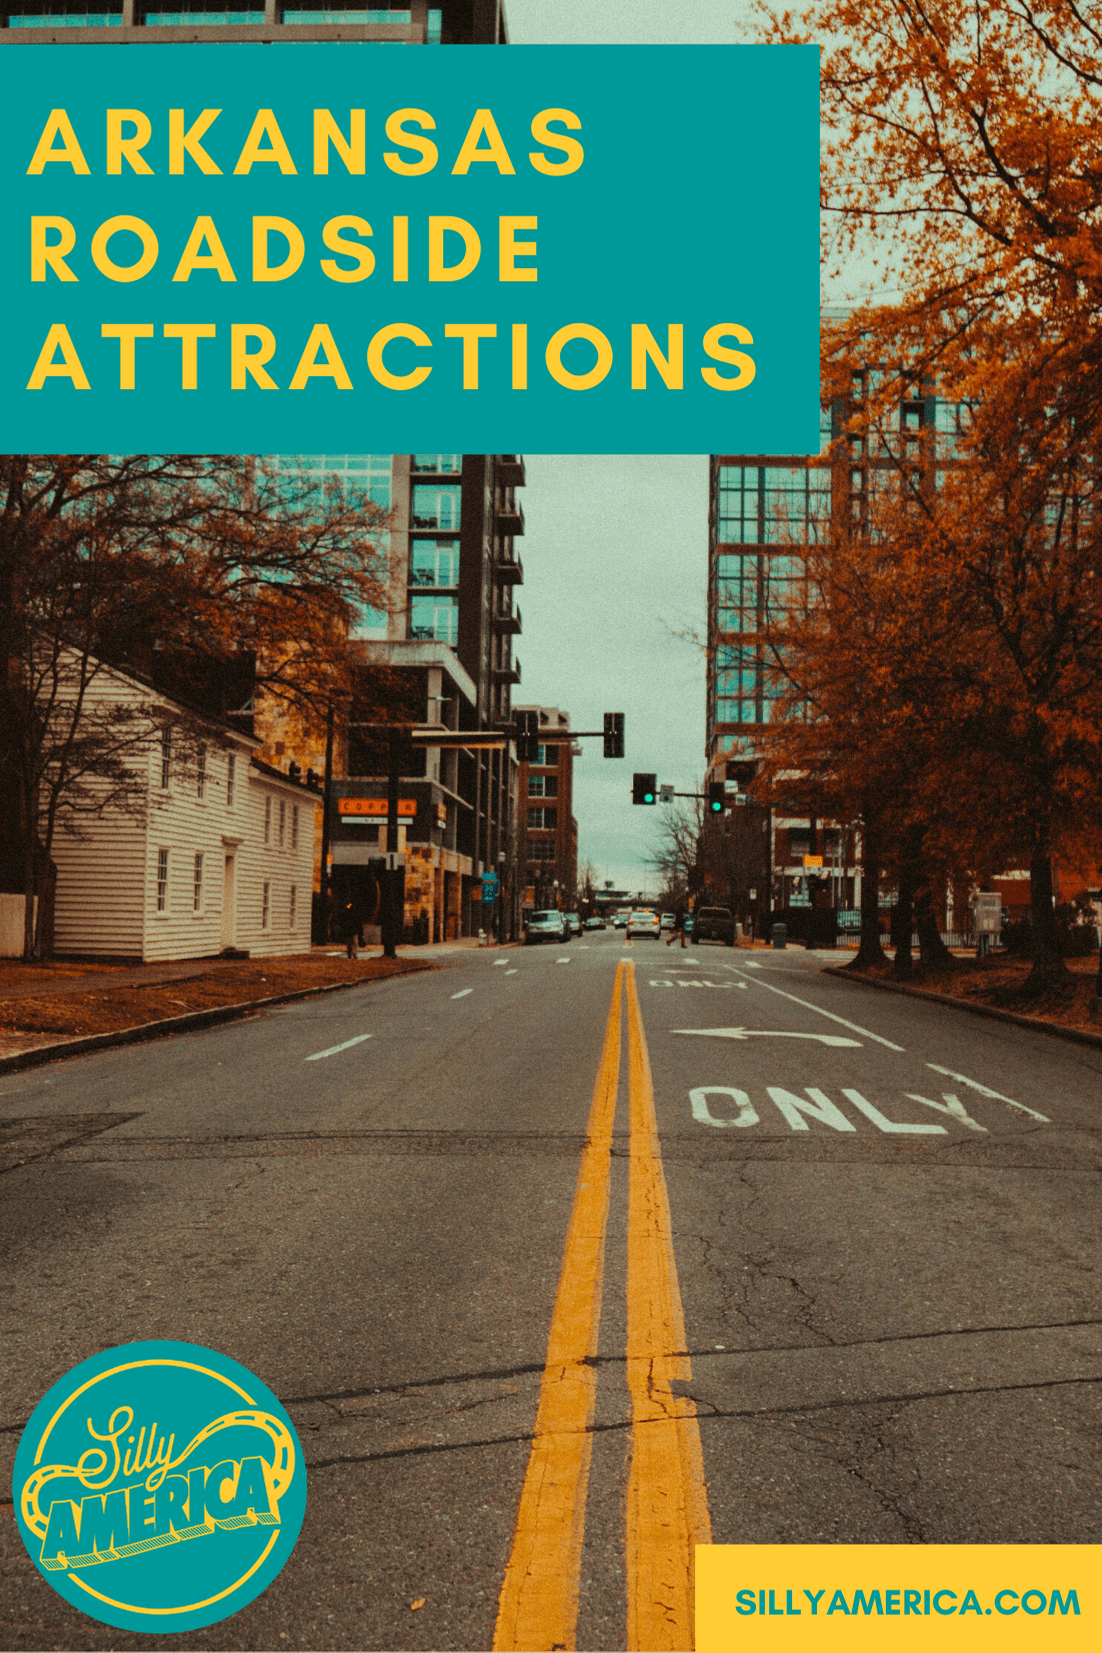 The best Arkansas roadside attractions to visit on an Arkansas road trip with kids or adults. Add these roadside oddities and road trip stops to your travel bucket list, itinerary, or vacation route map! #ArkansasRoadsideAttractions #ArkansasRoadTrip #ArkansasTravel #BeautifulPlacesinArkansas #ArkansasBucketLists #ArkansasWithKids#WeirdRoadsideAttractions